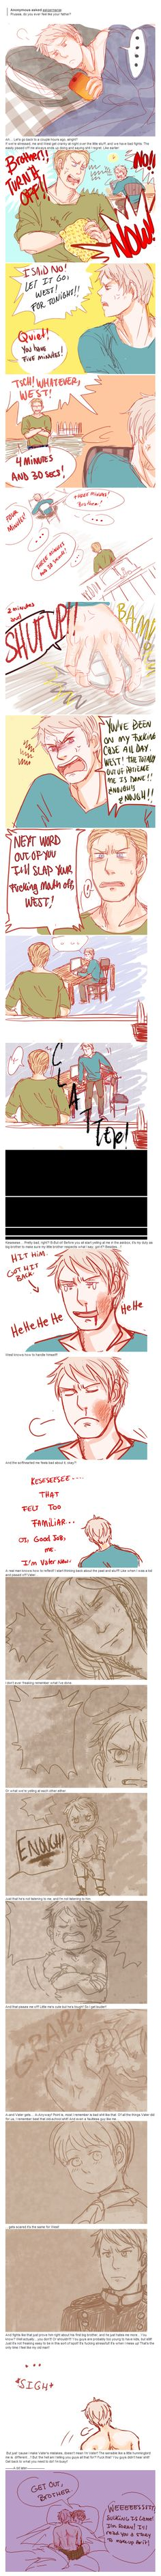 APH: Do you ever feel like your father? by Assby.deviantart.com on @deviantART - Gilbert and Ludwig (with a cameo from Germania)